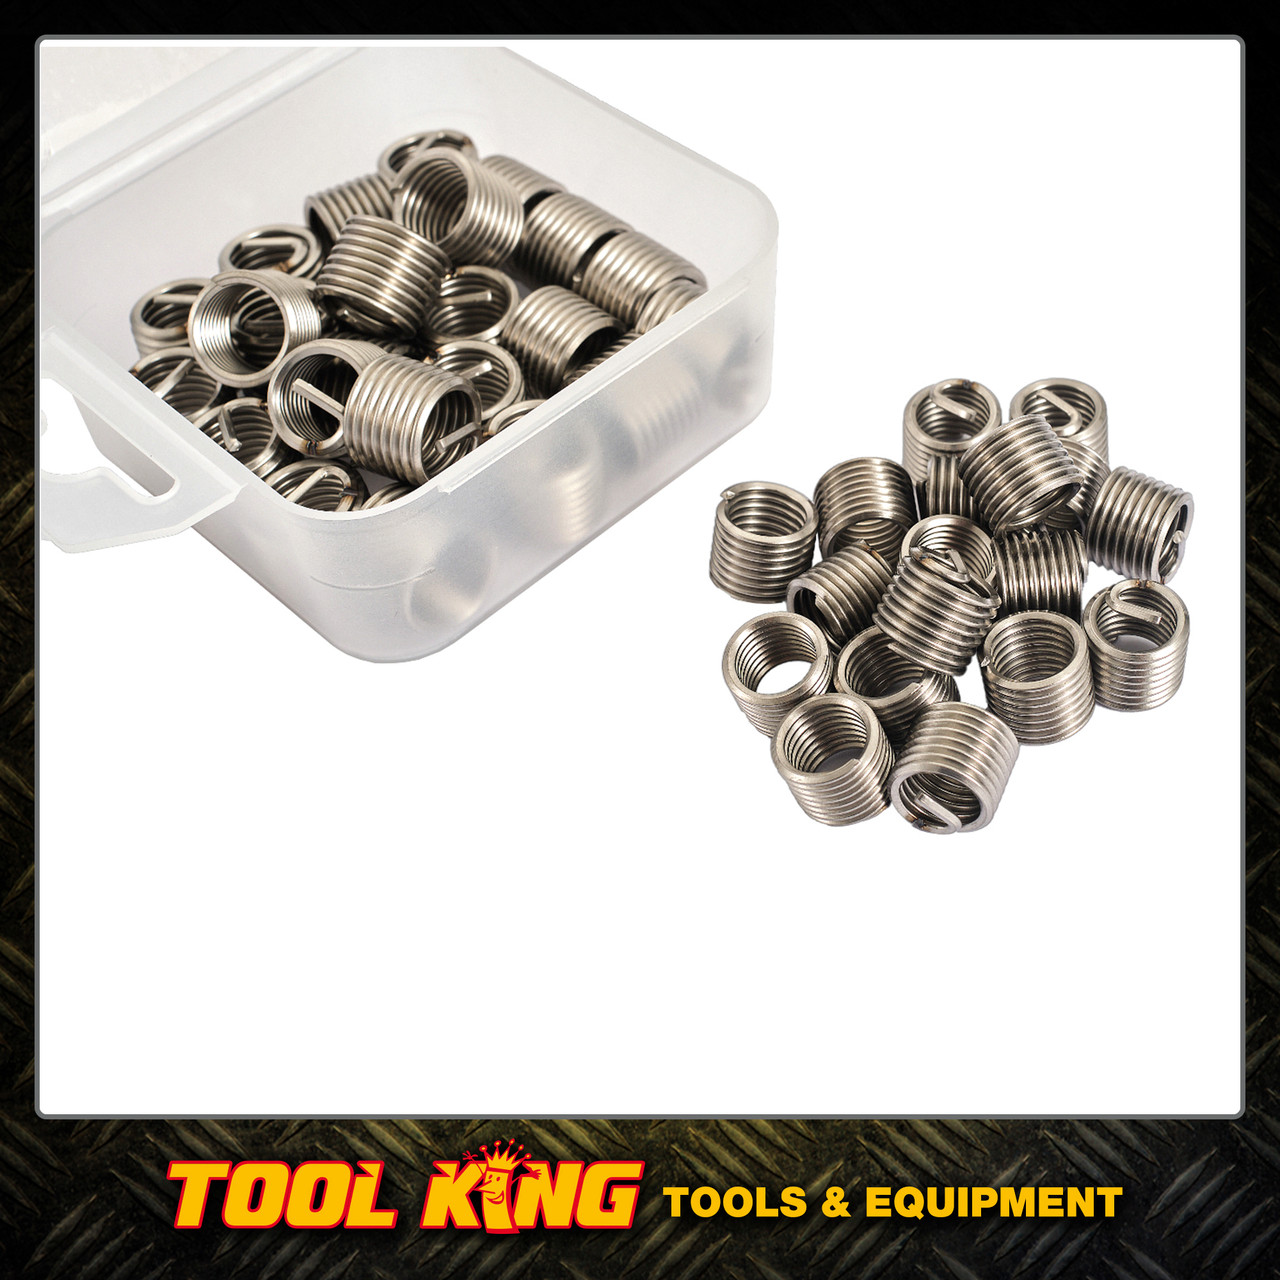 Thread repair helicoil inserts M10 x 1.5